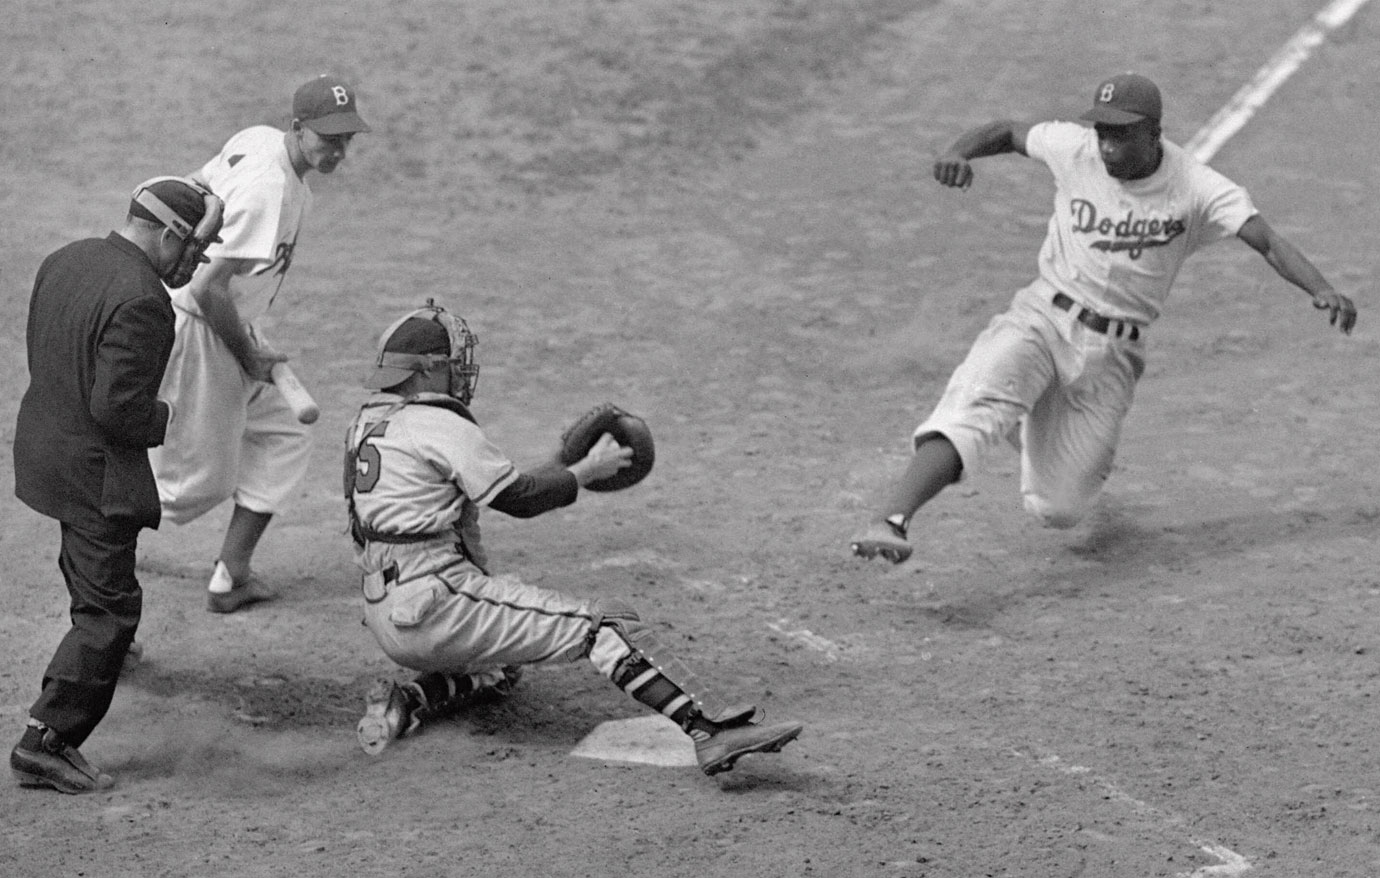 Jackie Robinson steals home against Braves pitcher Bill Voiselle and catcher Bill Salkeld on Aug. 22, 1948 at Ebbets Field.